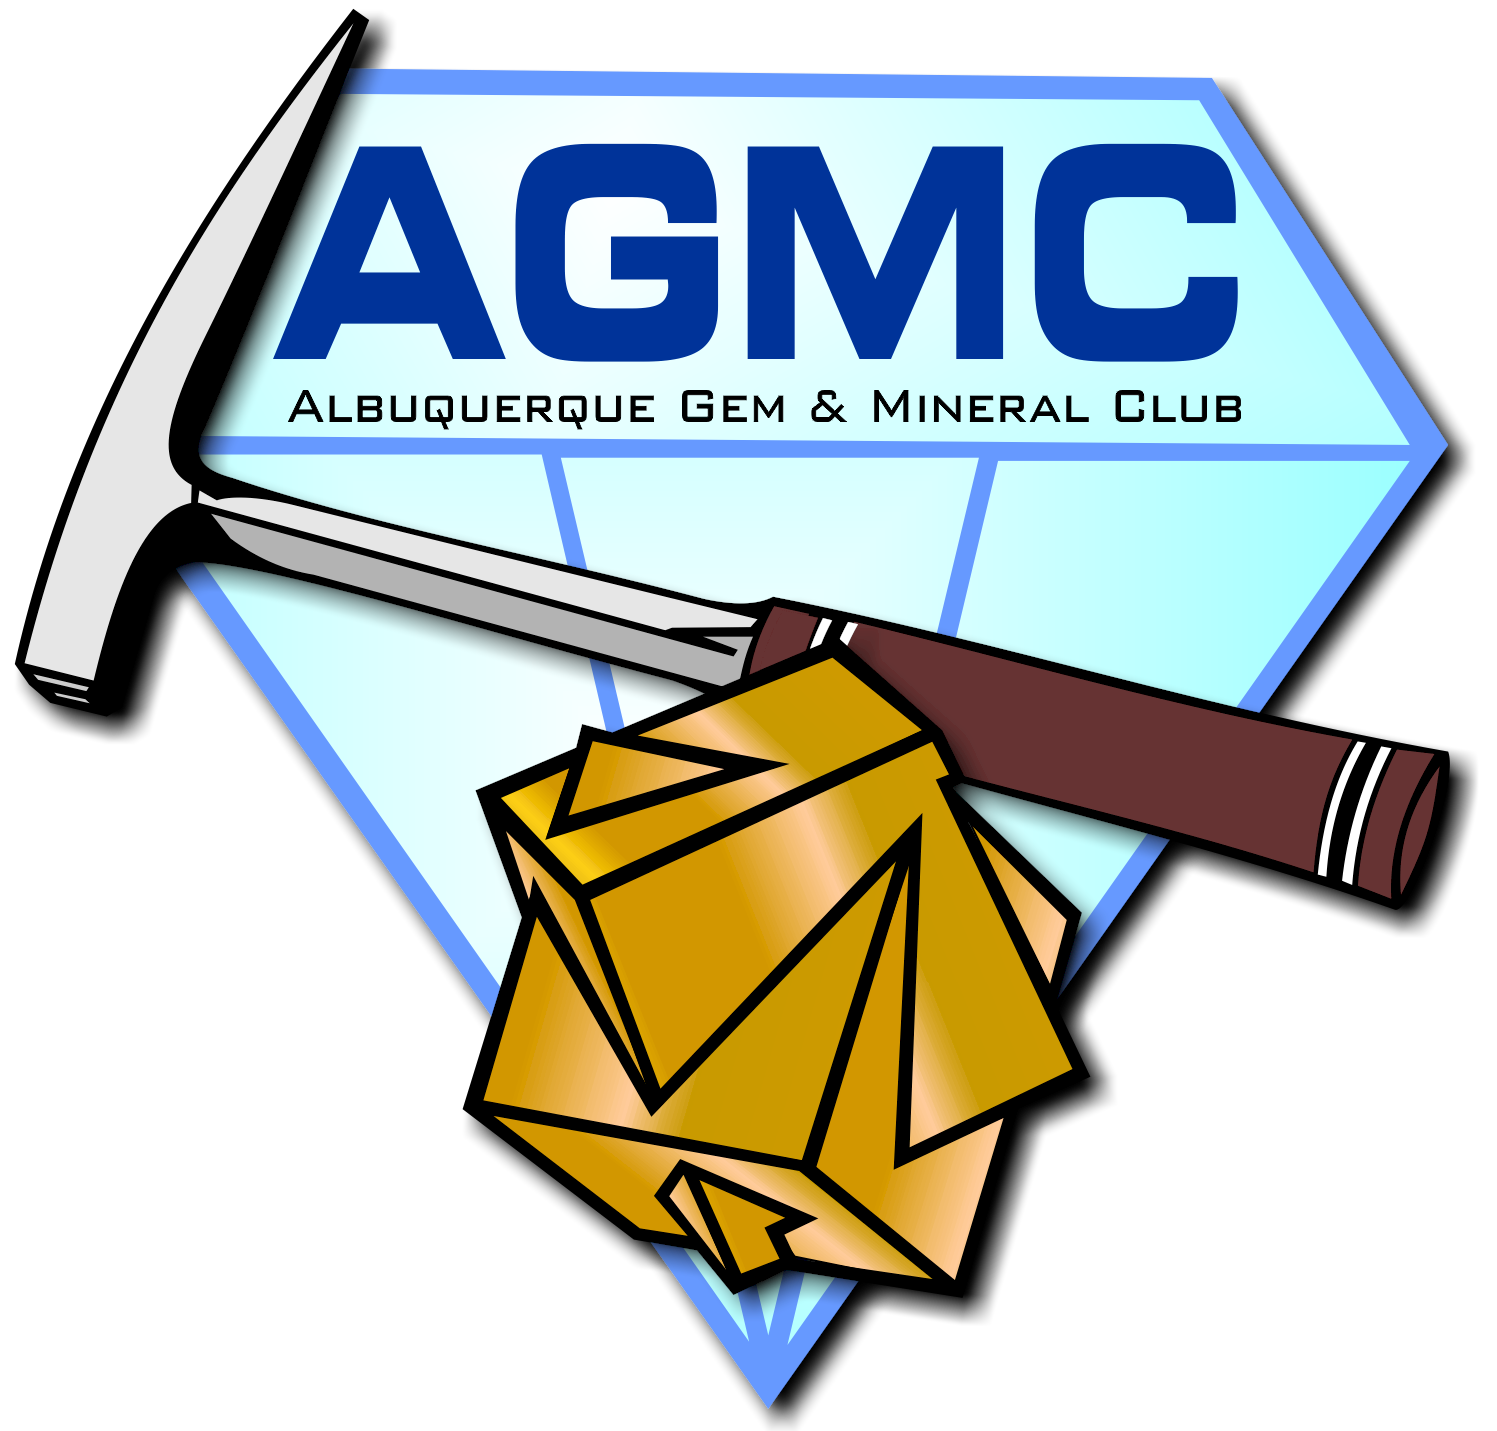 Albuquerque Gem & Mineral Club